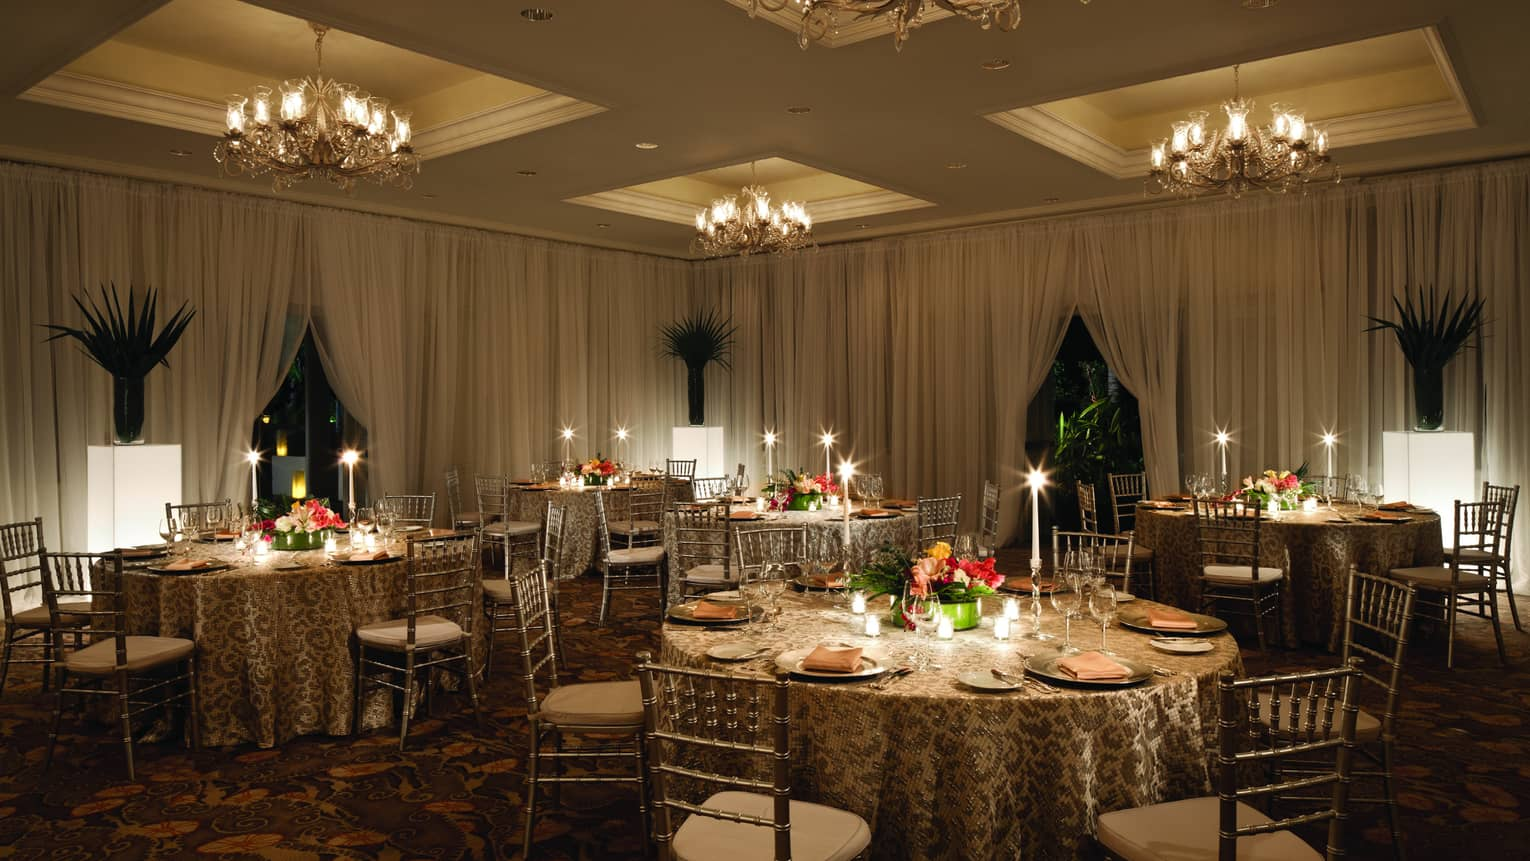 Round candle-lit banquet dining tables in ballroom